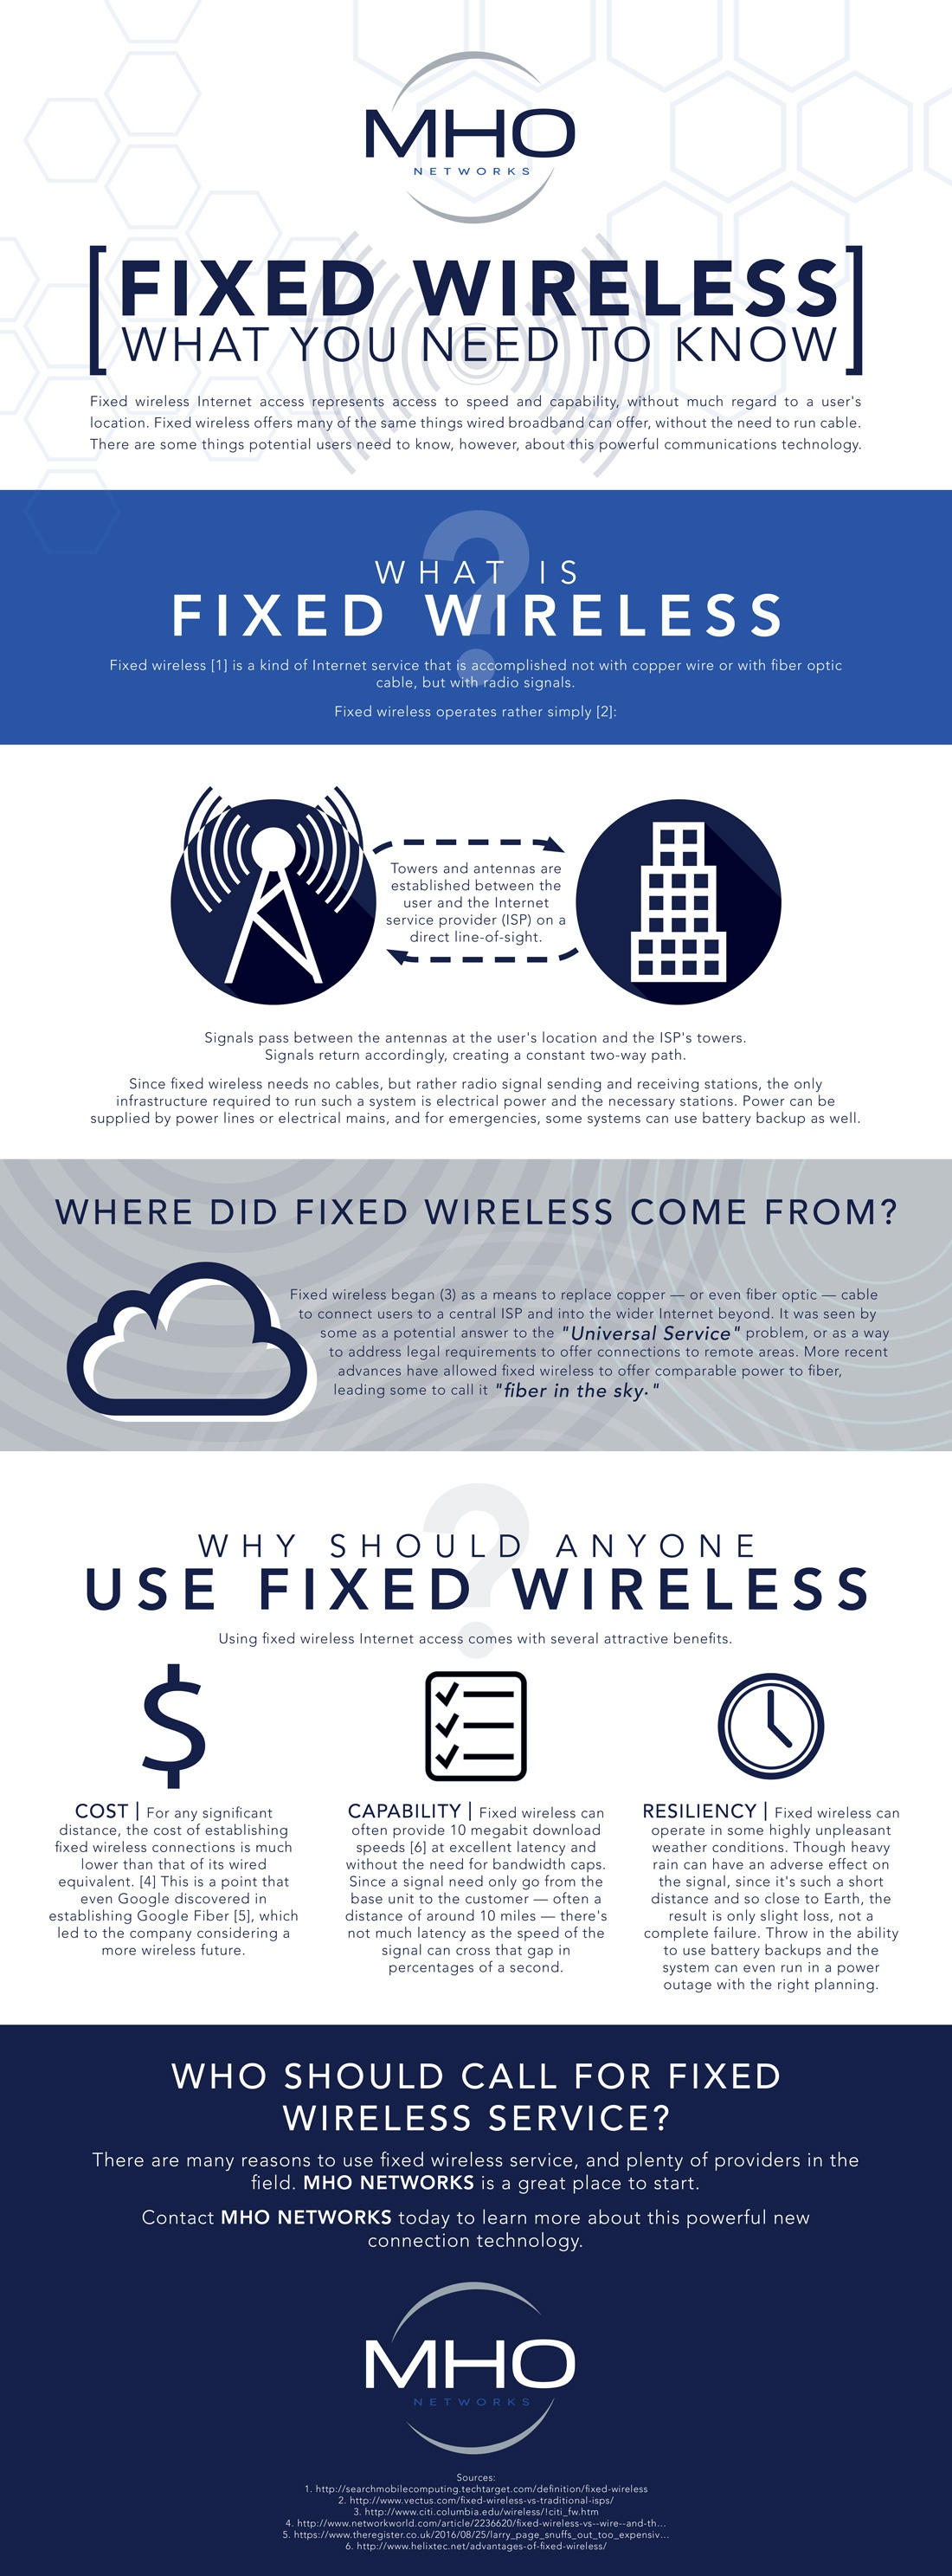 Fixed wireless may be the Internet connectivity solution your business needs.